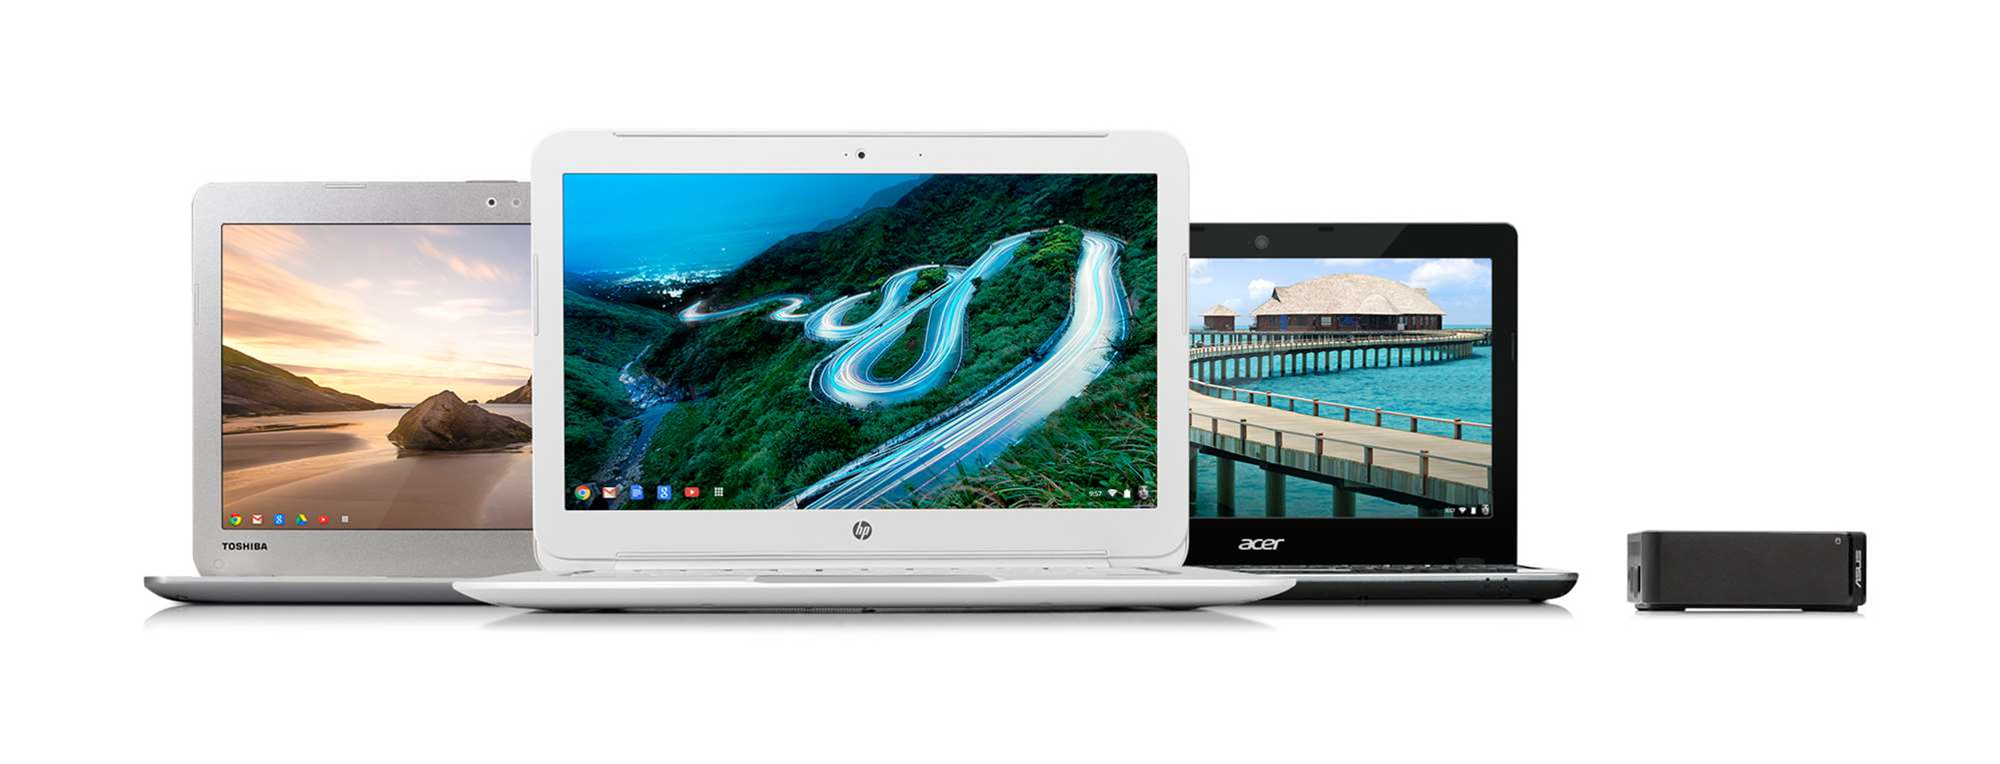 New Google Chromebook range. Source: Google